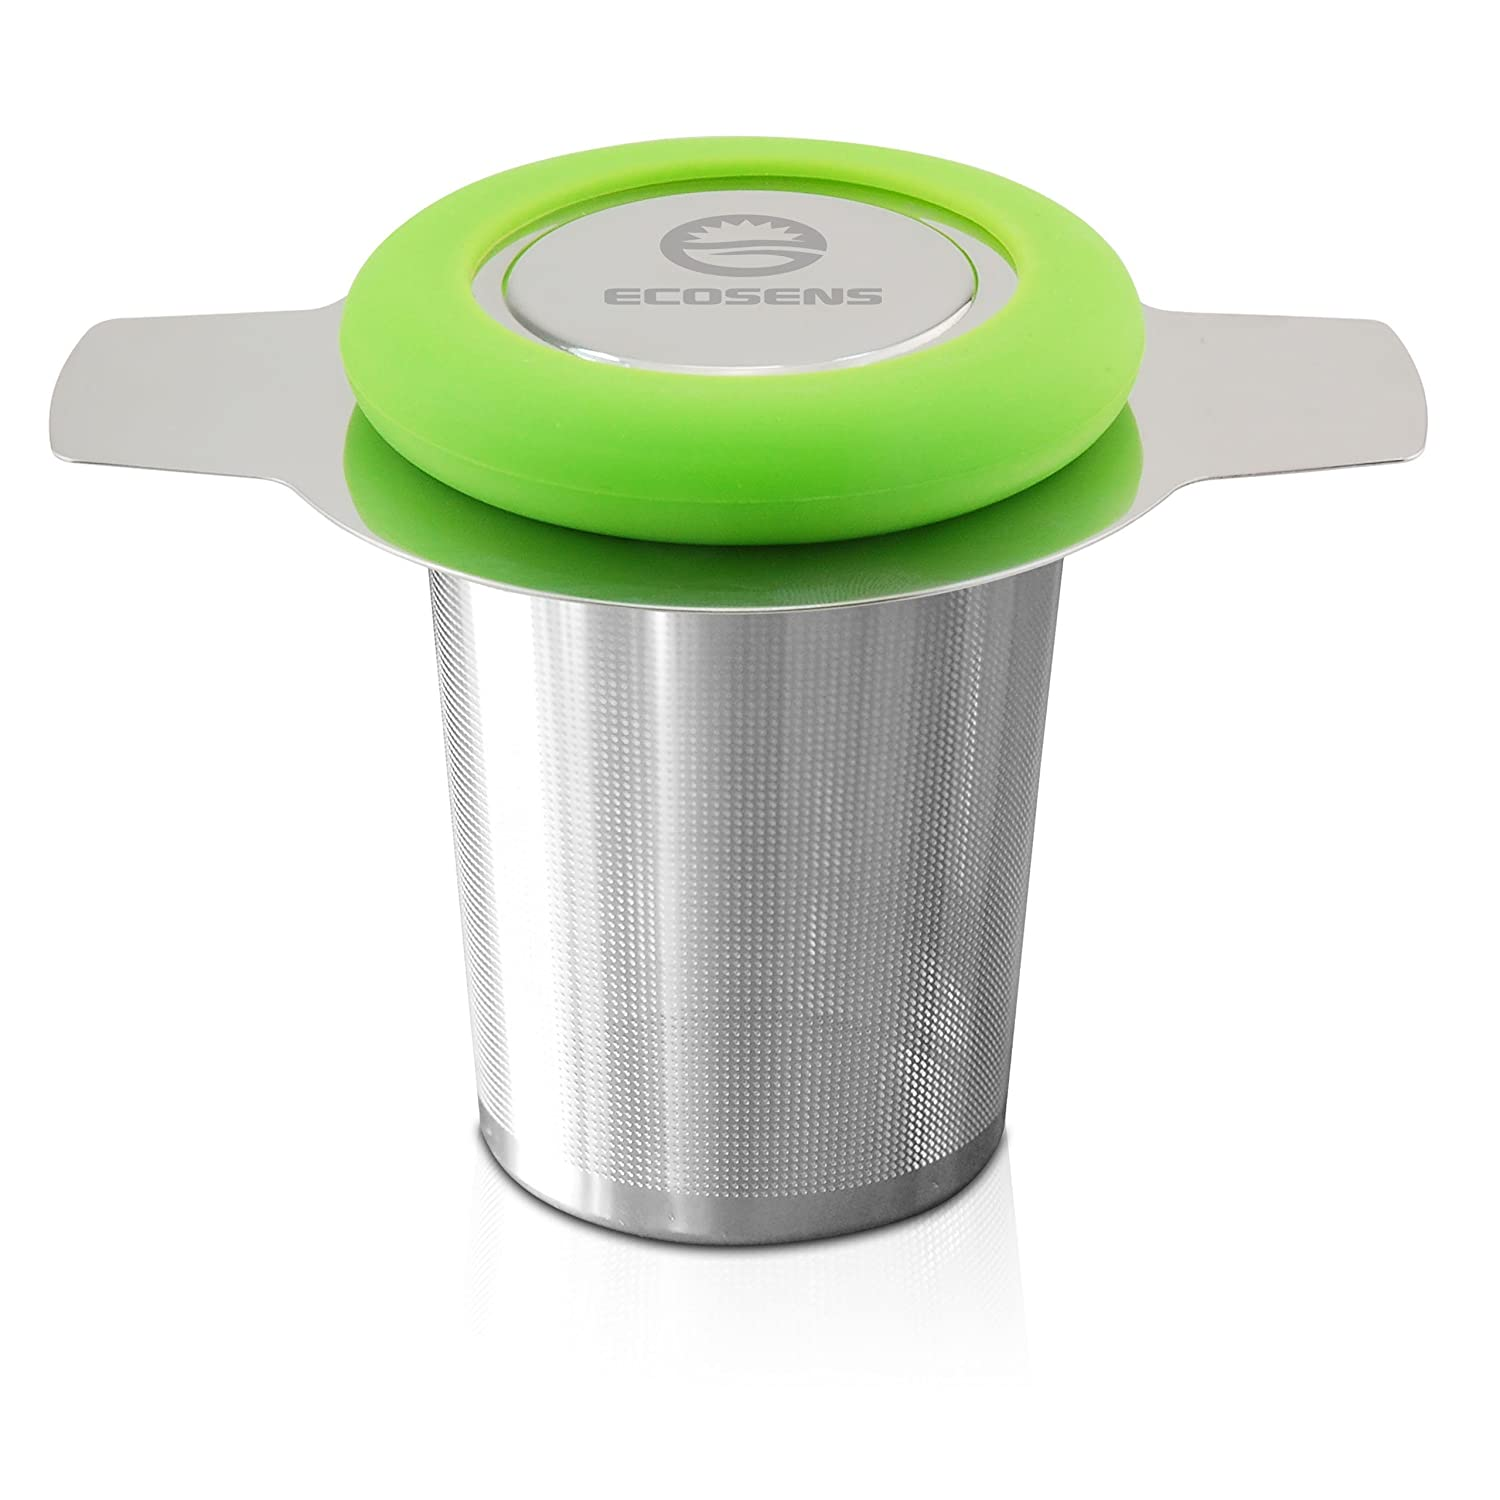 ECOSENS Stainless Steel Mesh Loose Leaf Tea Infuser with Lid and Hot Resistant Silicone Liner, Green